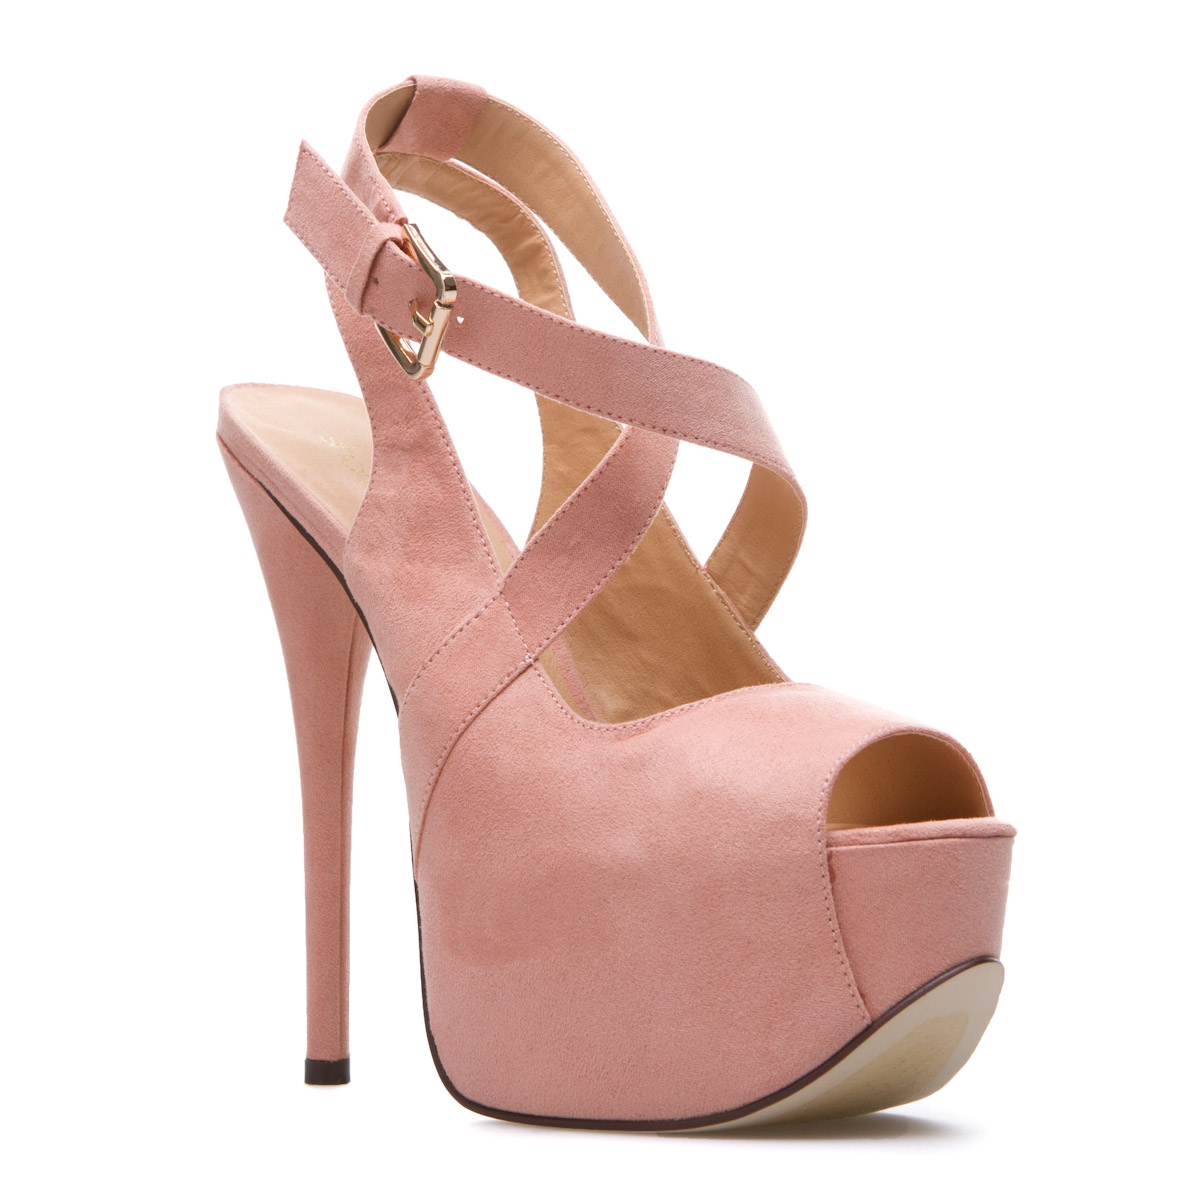 Blush Colored Shoes